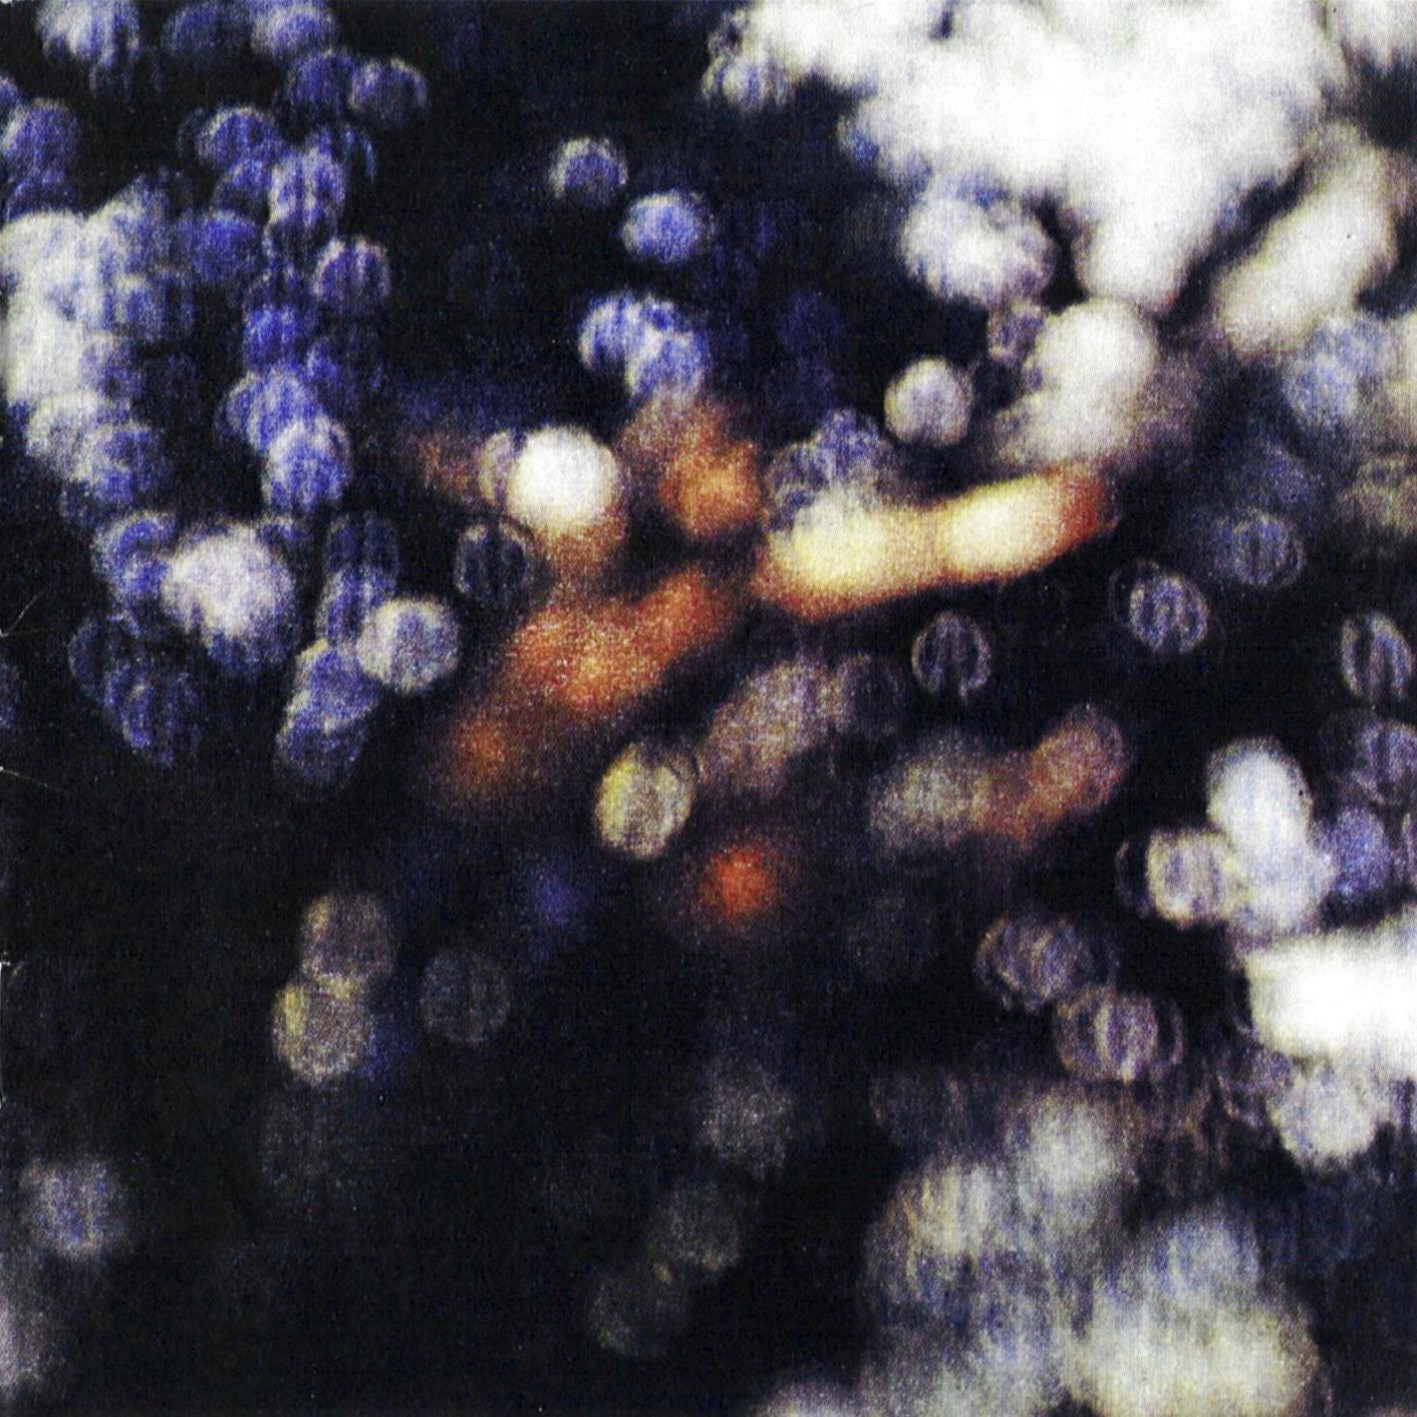 First Listen – Pink Floyd's Obscured by Clouds Analog Revolution